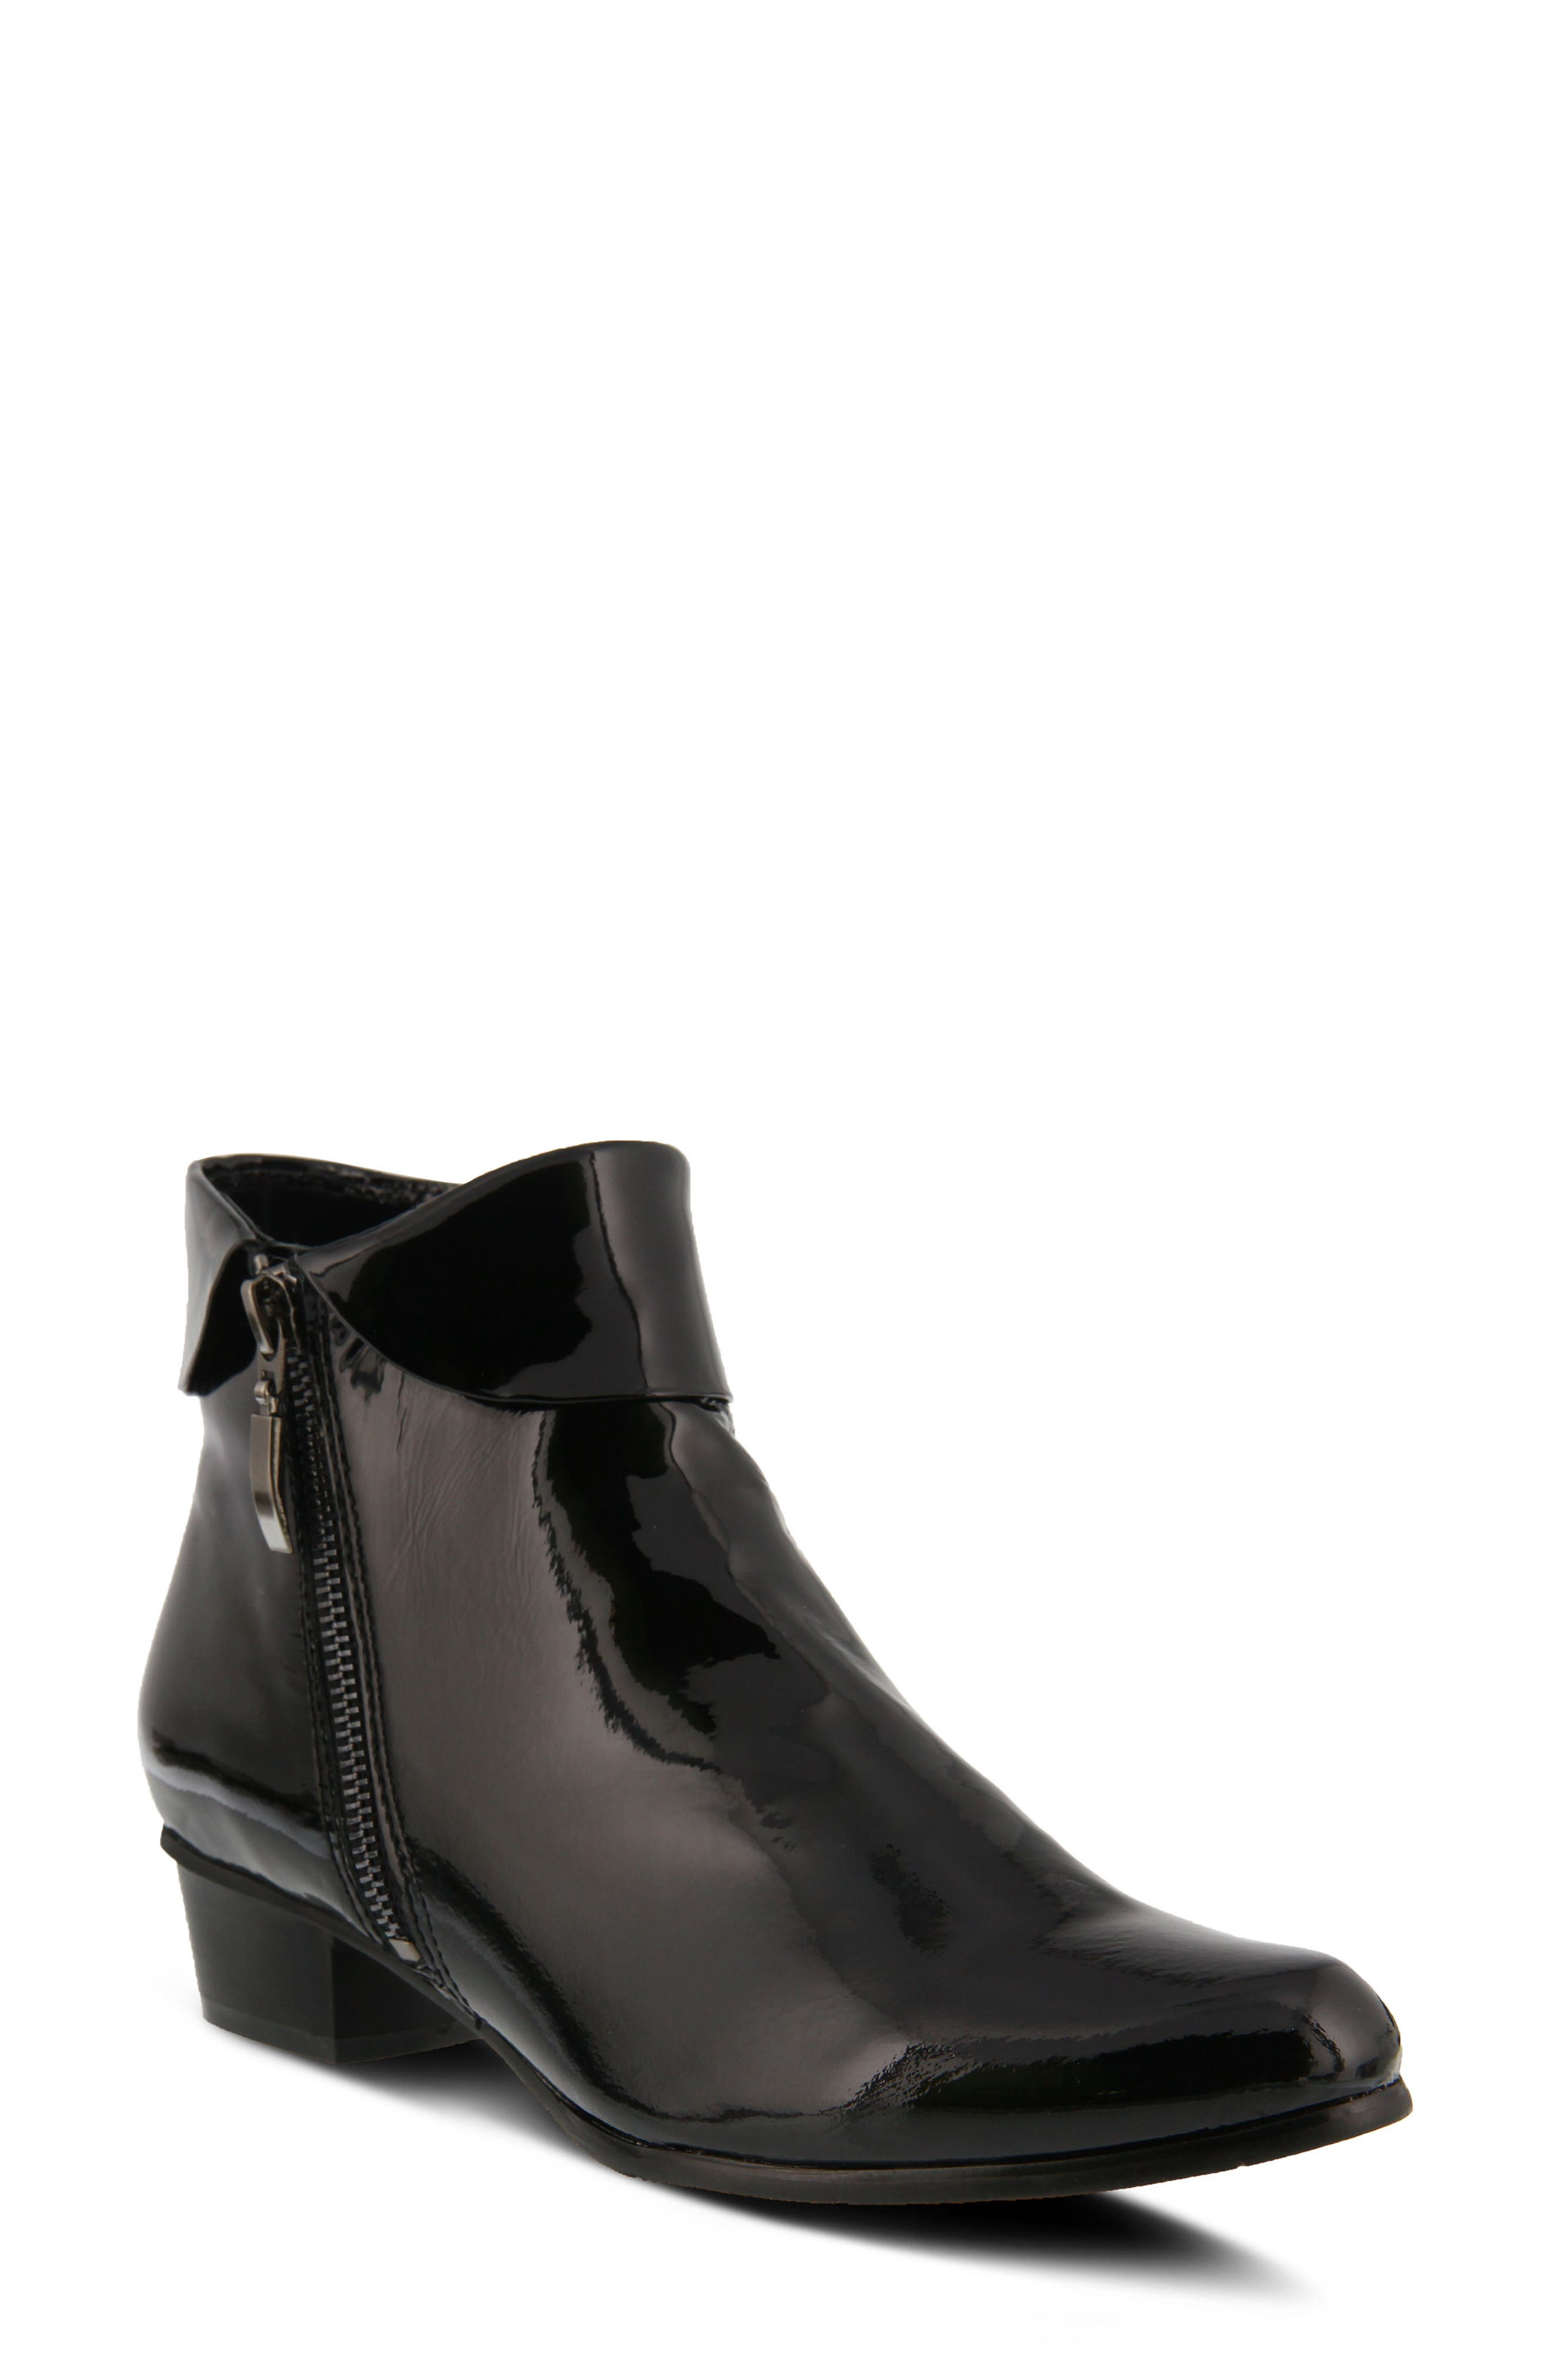 Alternate Image 1 Selected - Spring Step 'Stockholm' Boot (Women)